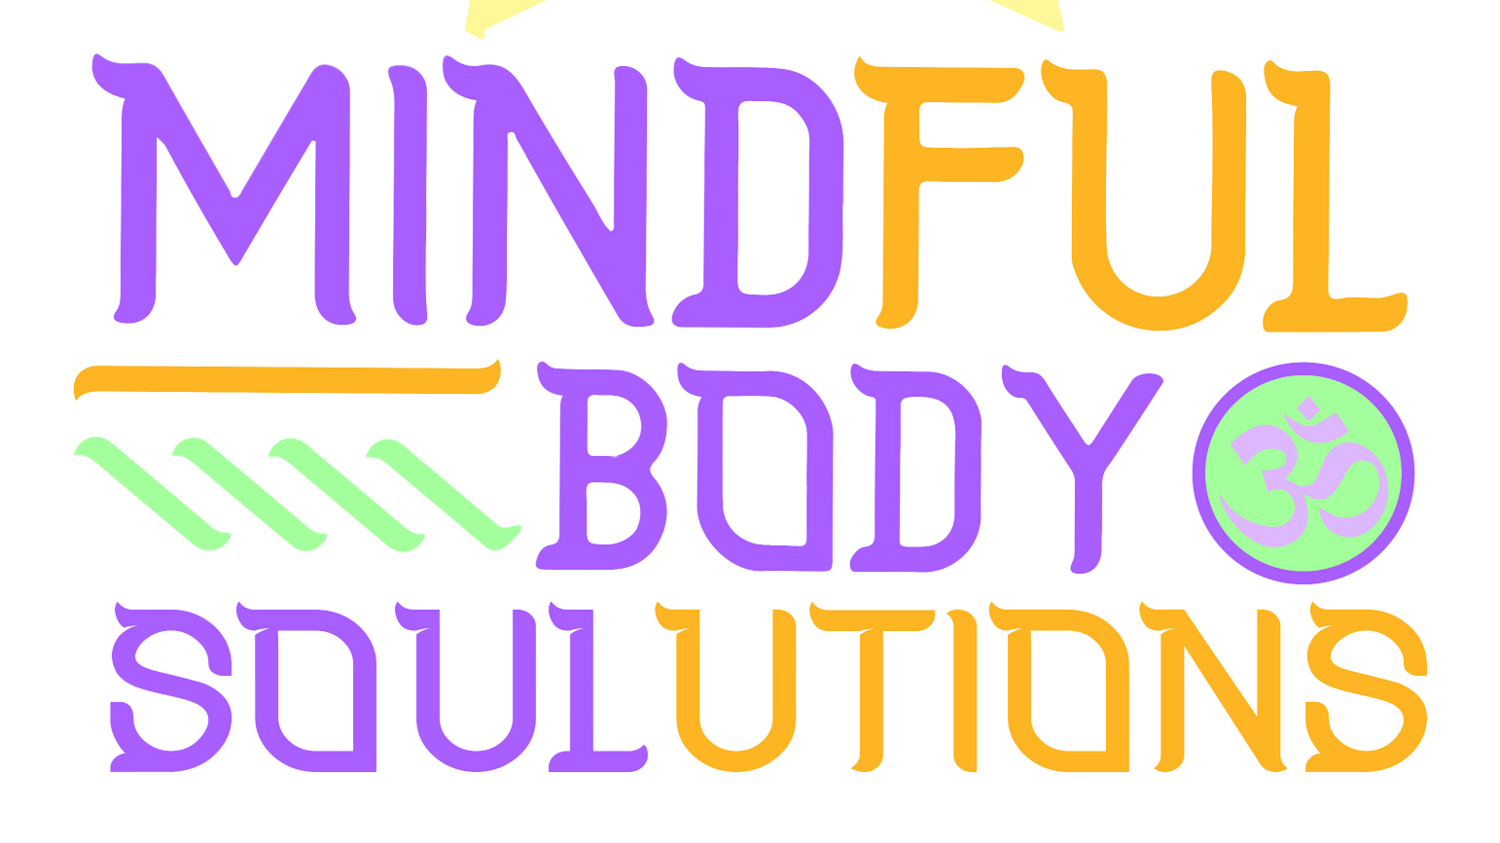 MINDful BODY SOULutions